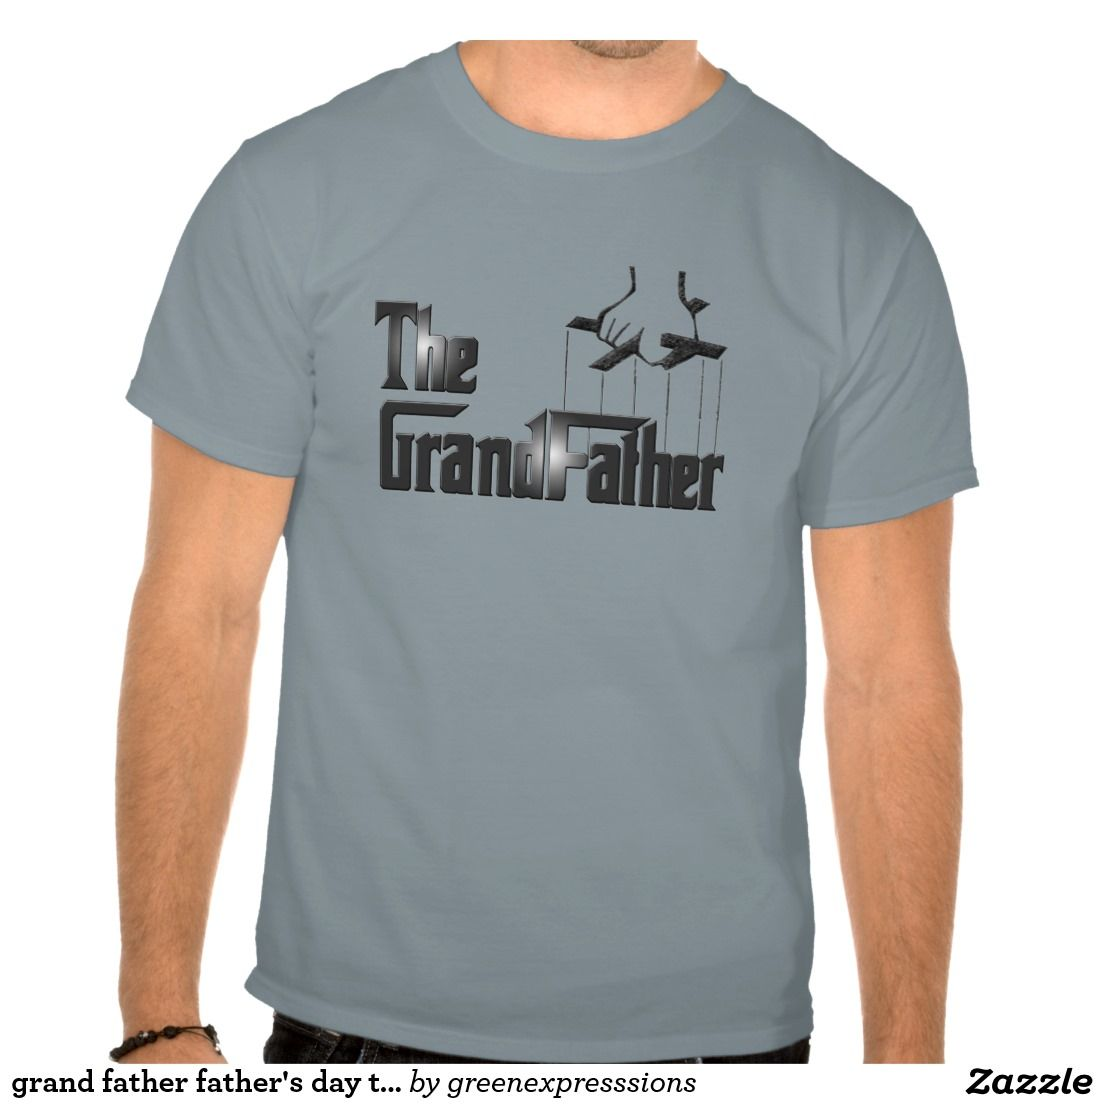 Create your own designs amp sell your design online shirts zazzle - Grand Father Father S Day T Shirt Design